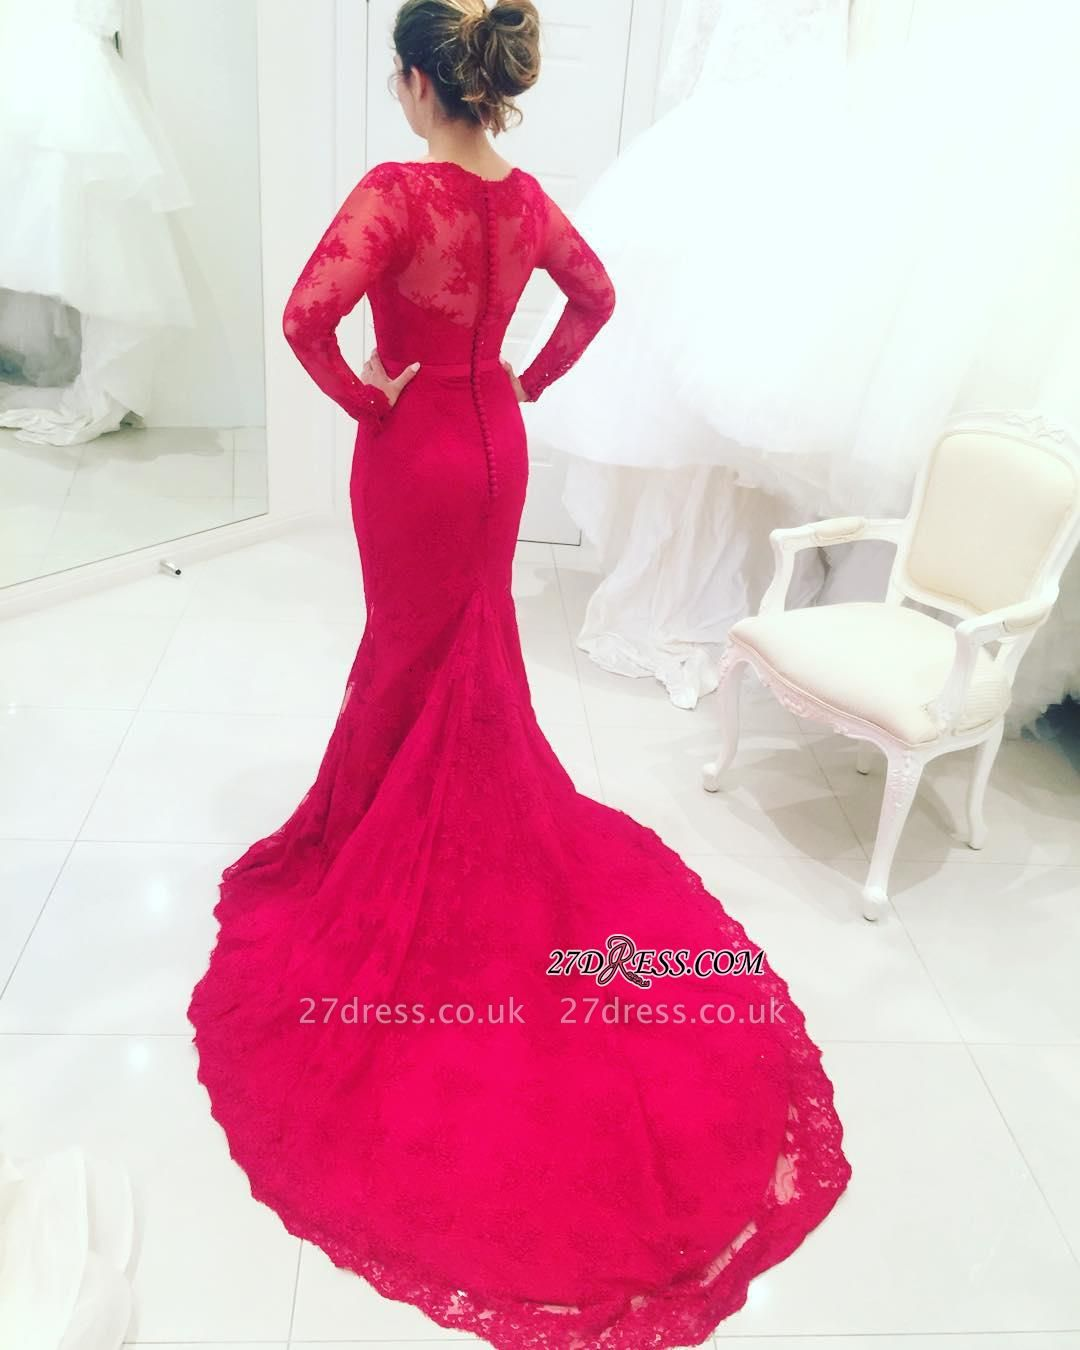 Mermaid High-Neck Long-Train Appliques Red Long-Sleeves Lace Evening Dress UKes UK BA3865